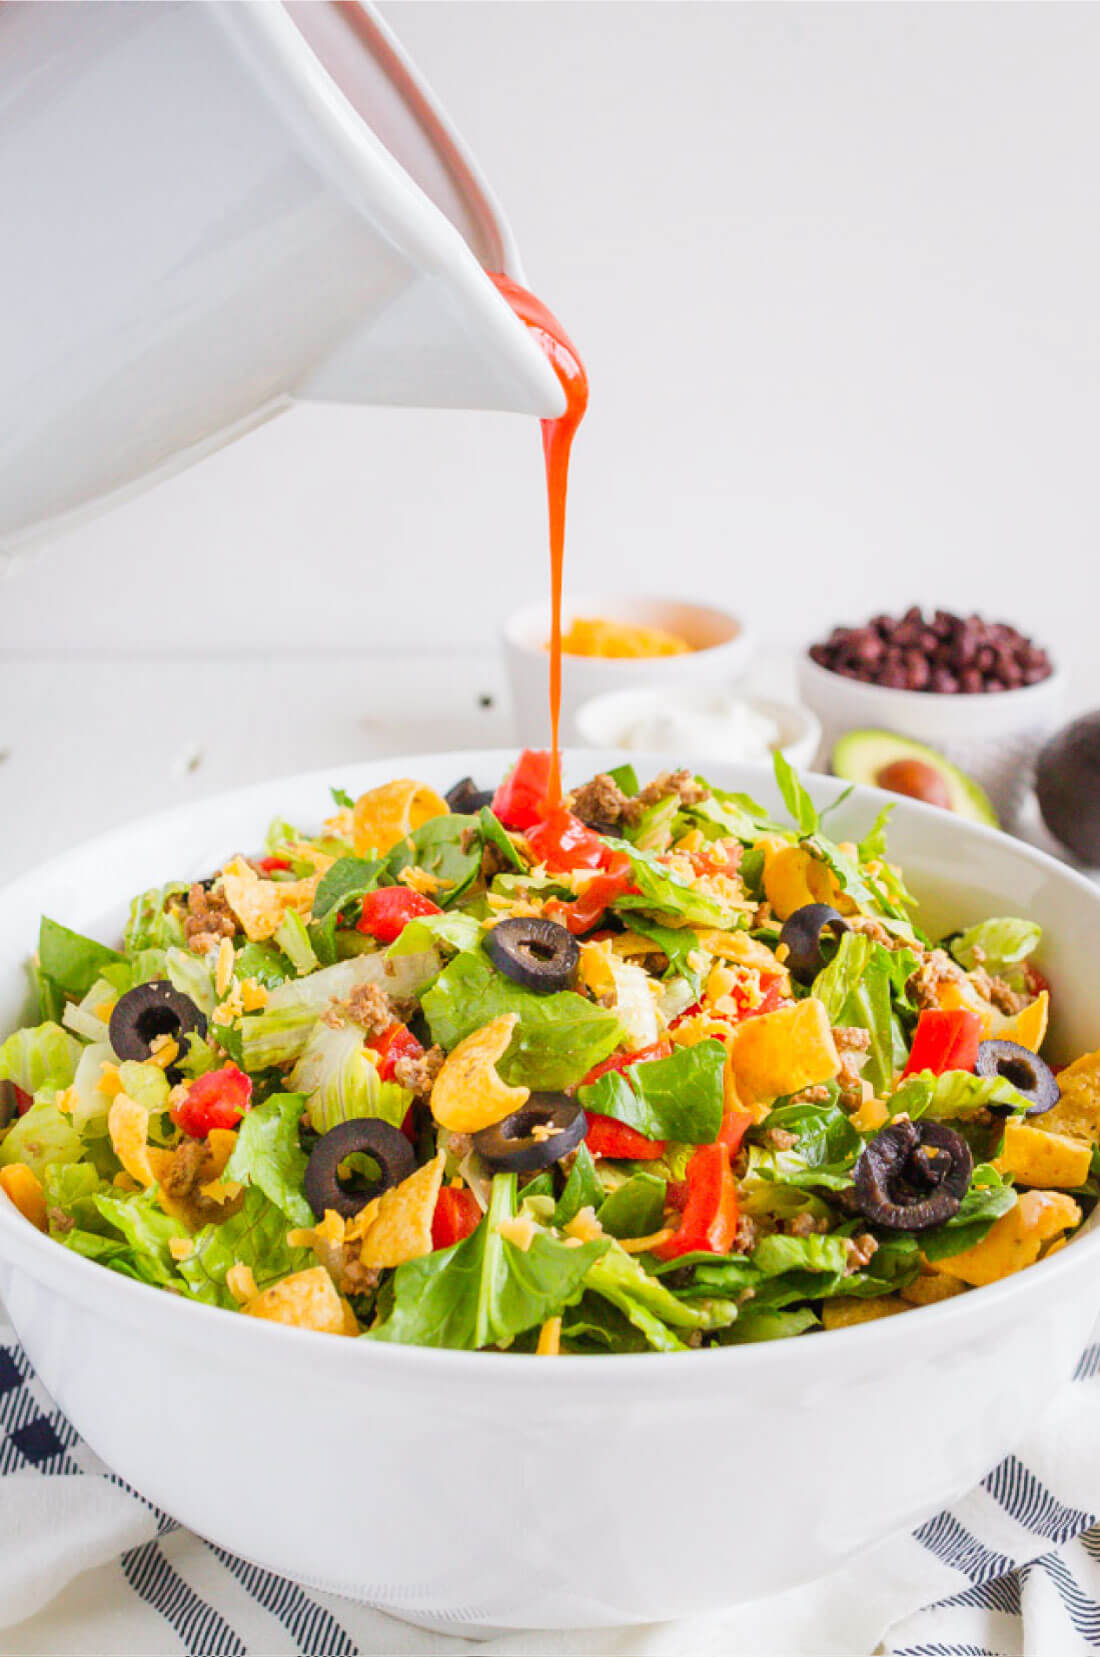 Mom's Taco Salad - make this easy dinner that your whole family will love. Pouring dressing